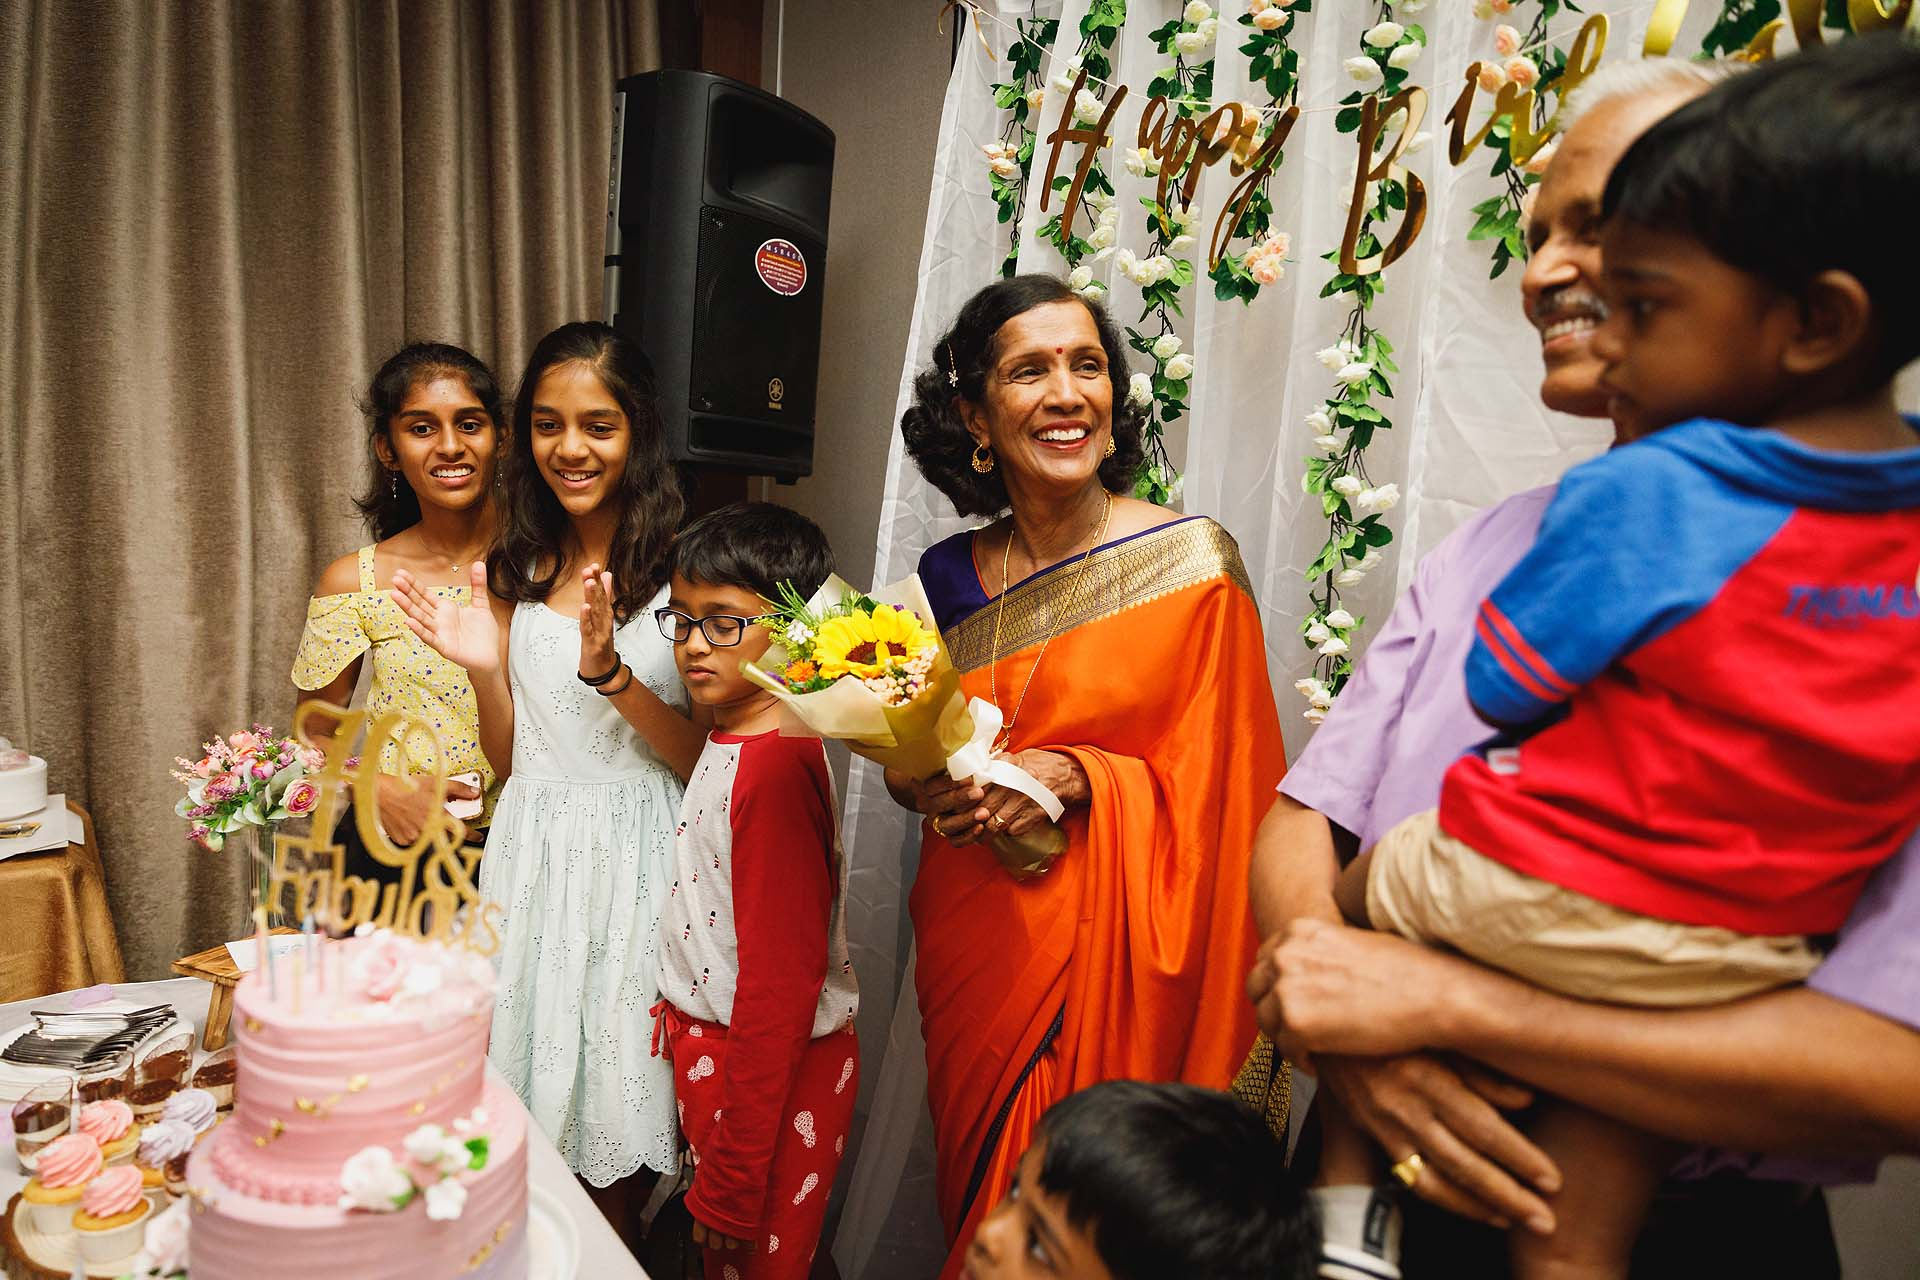 A surprise 70th birthday party at Serangoon Gardens Country Club.